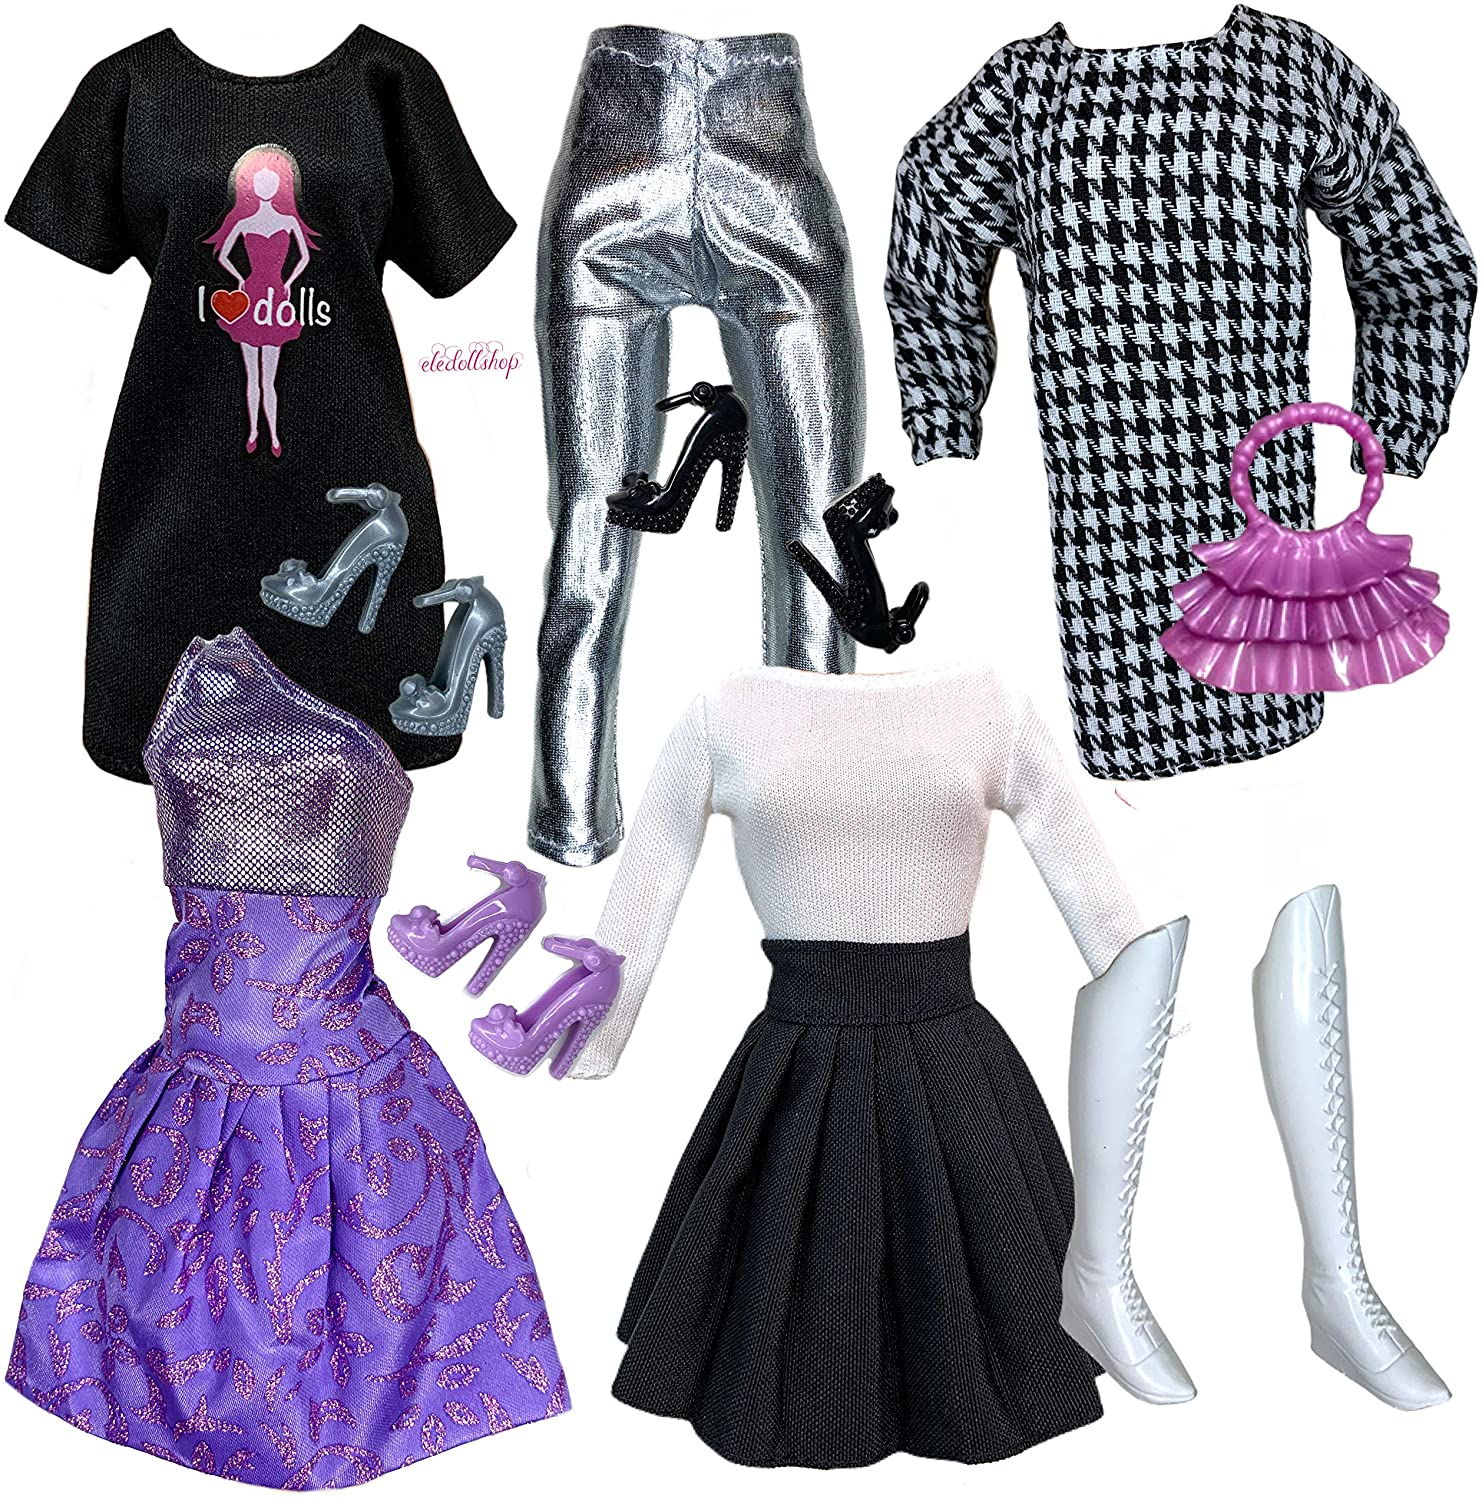 Eledoll 11.5 inch Doll Clothes Lot Shoes Accessories Deluxe Fashion Pack Purple Dress Black White Houndstooth Dress I Love Dolls